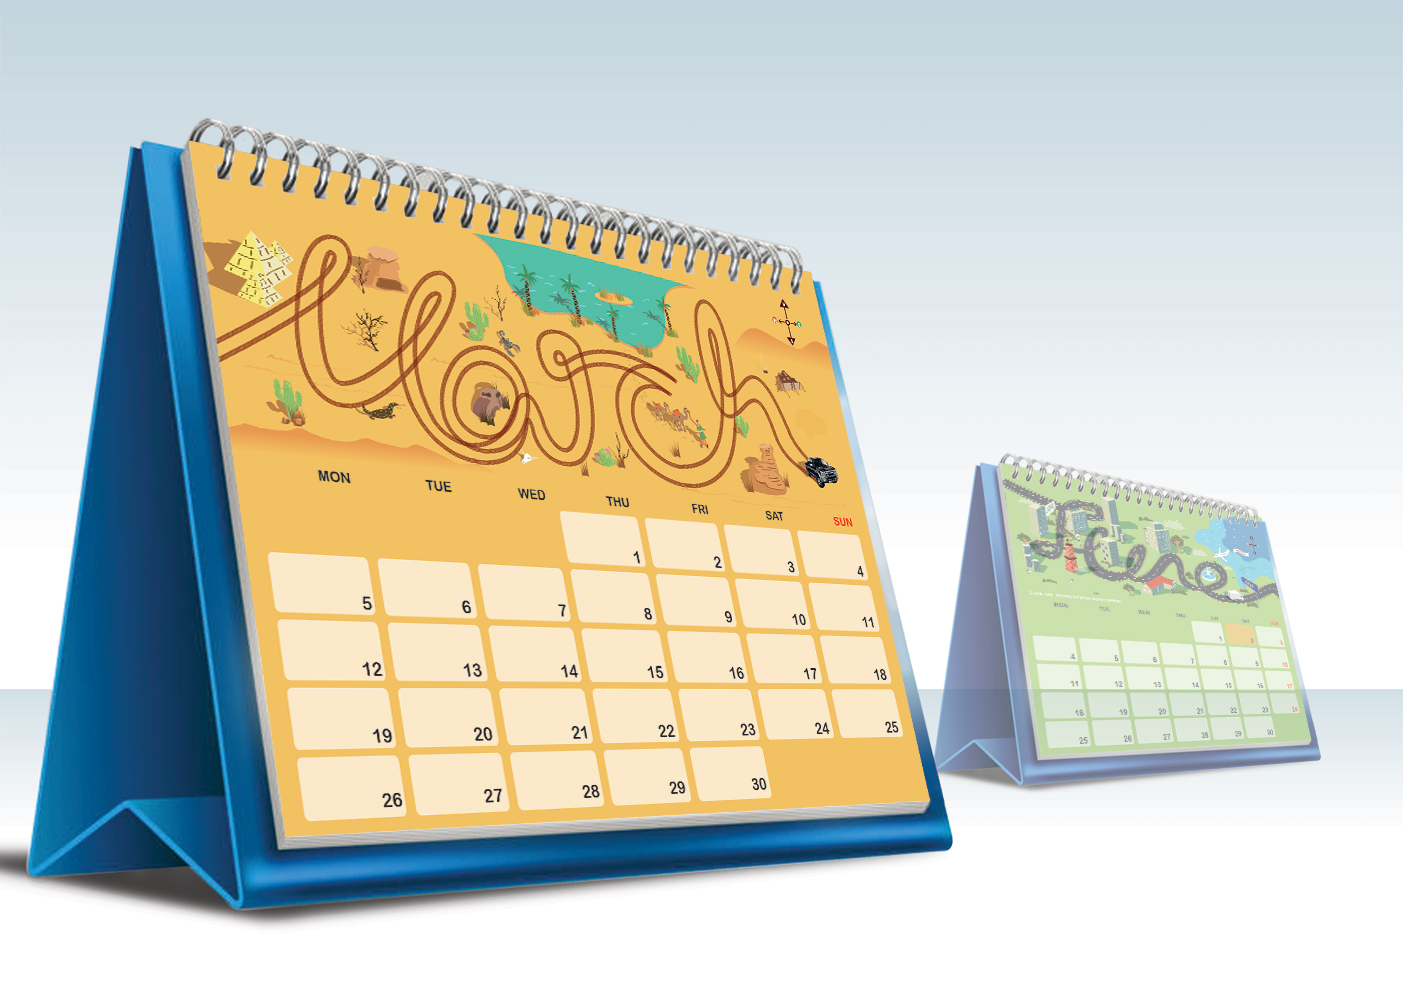 Calendar Design Pictures : Isuzu calendar design by jason tan yee chuan at